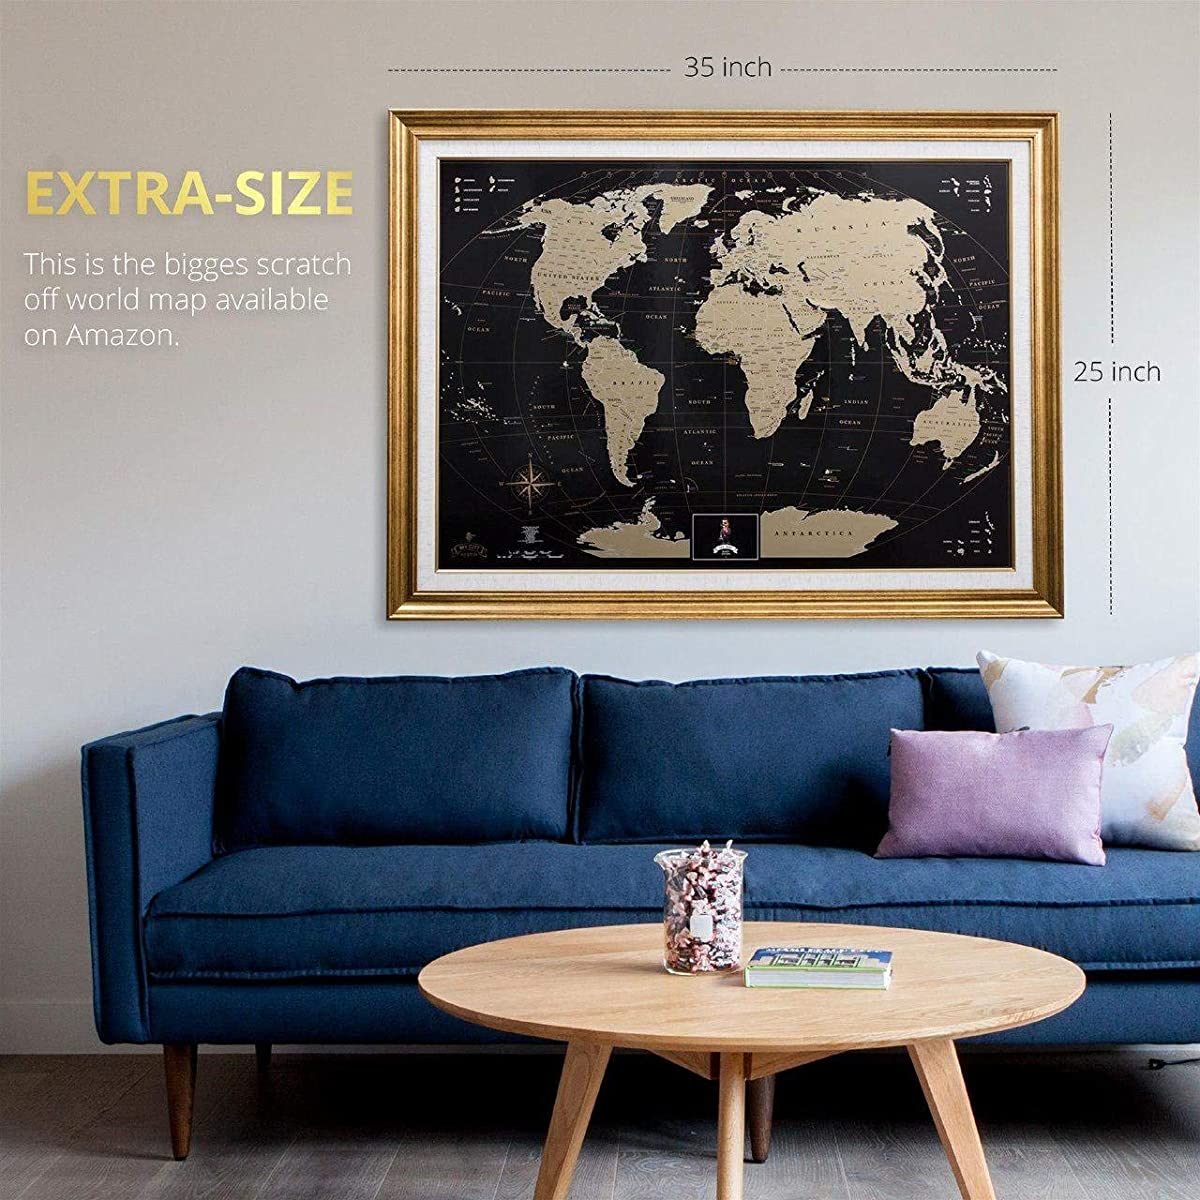 MyMap Gold Scratch Off World Map Wall Poster with US States, 35x25 inches, Includes Pins, Buttons and Scratcher, Glossy Finish, Black with Vibrant Colors